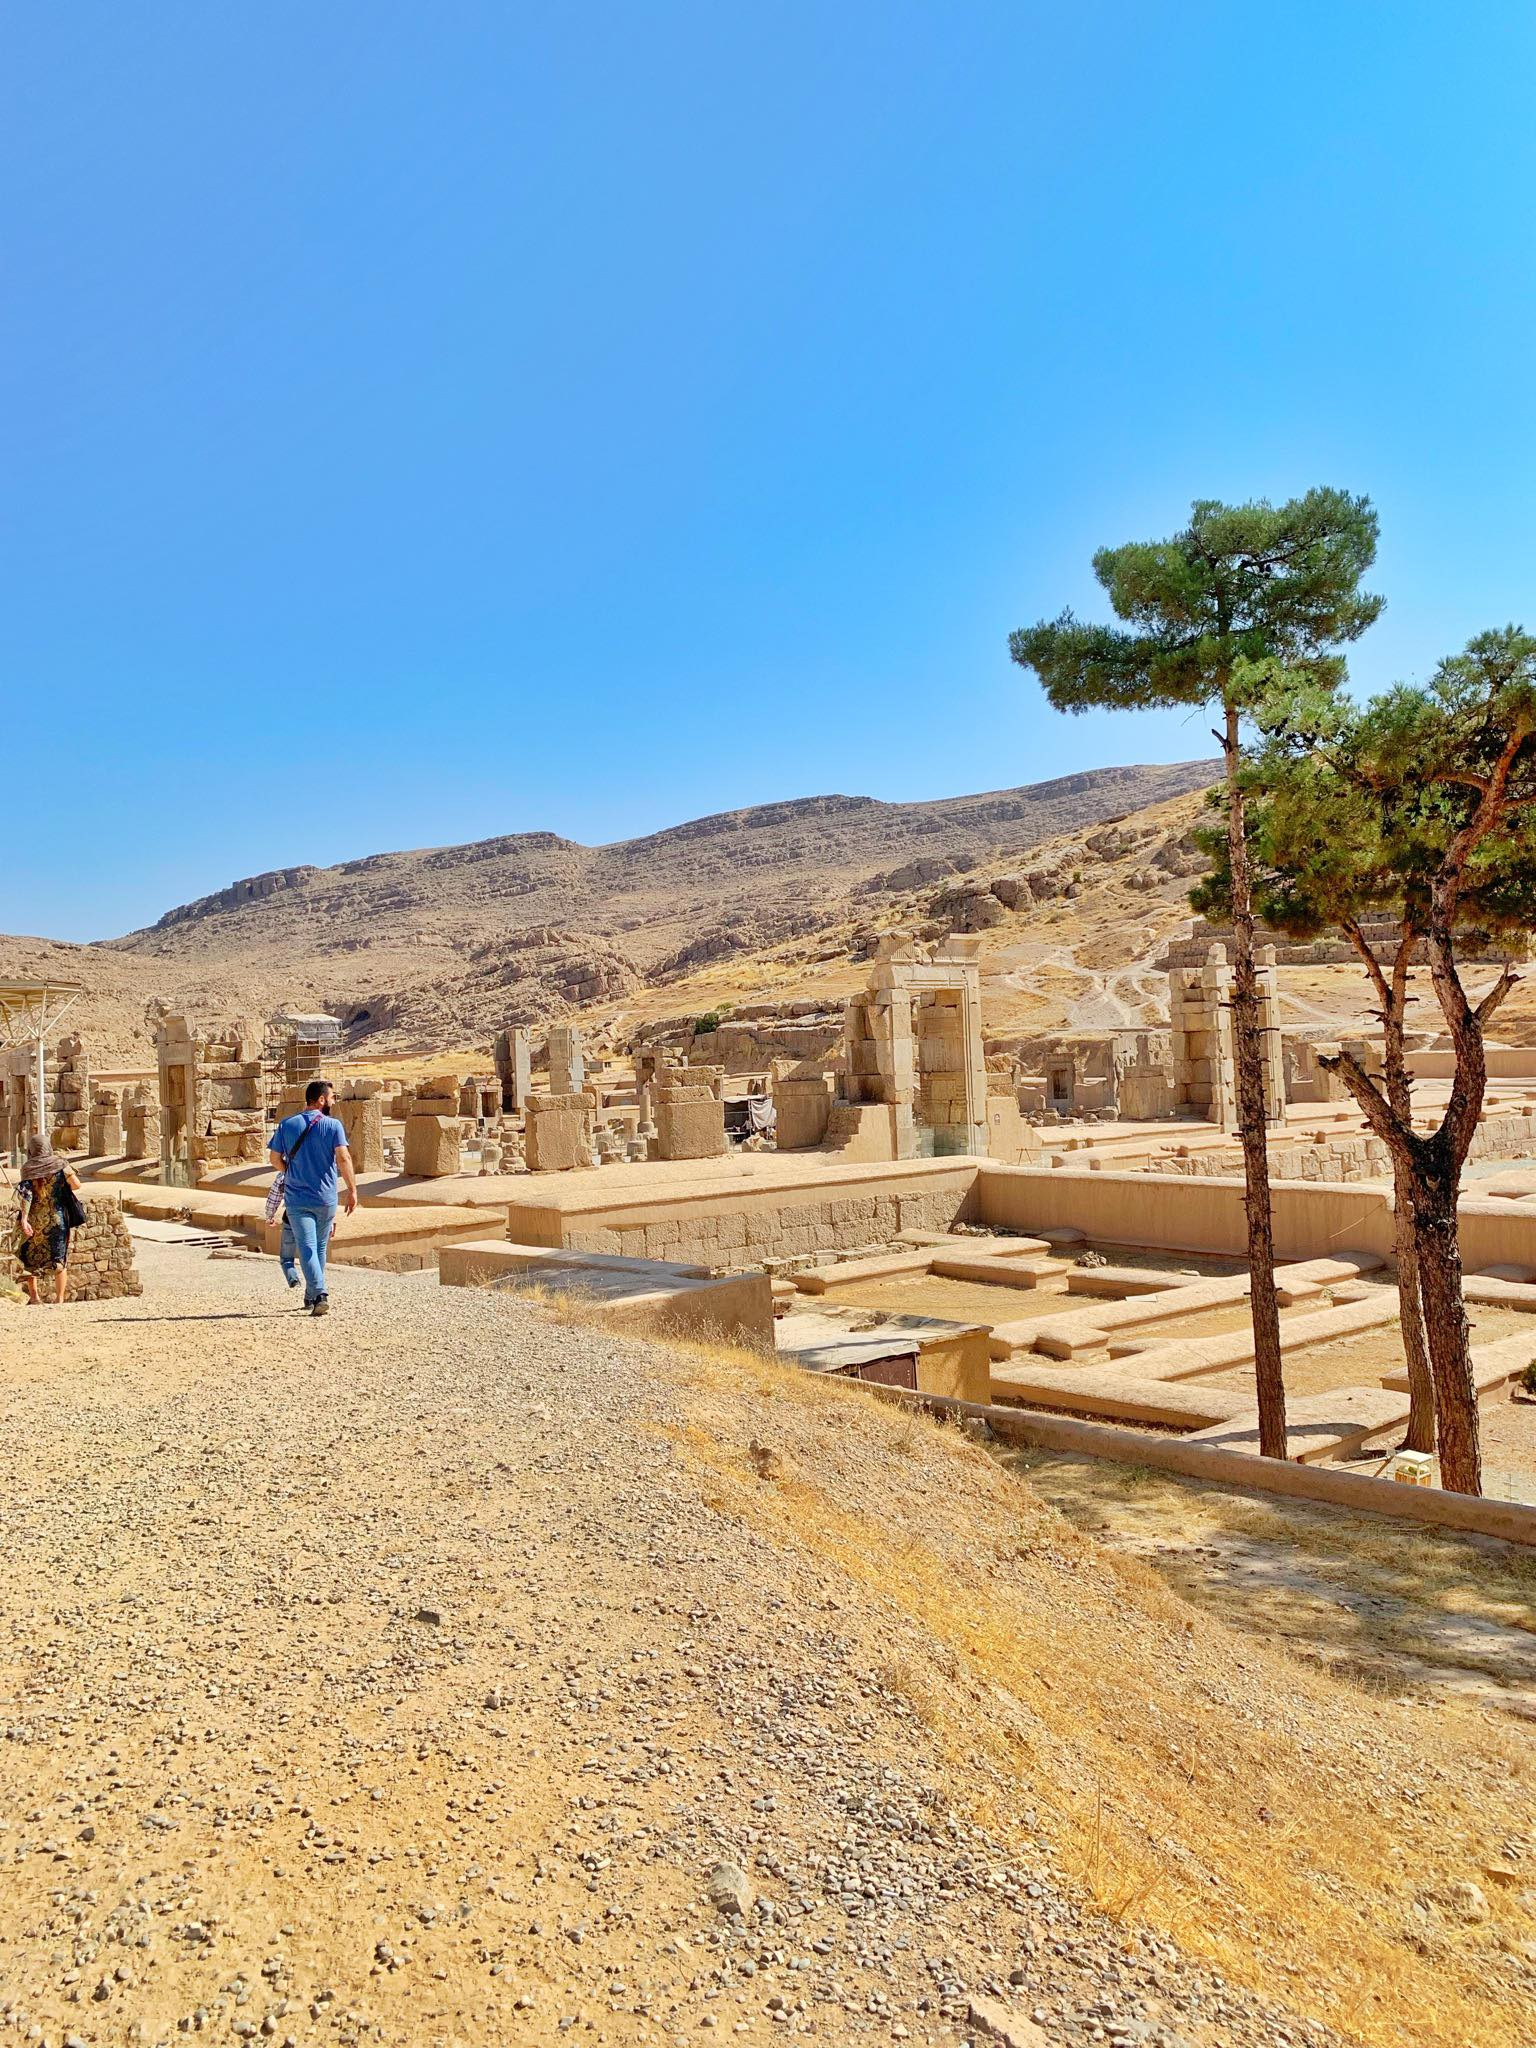 Kach Solo Travels in 2019 UNESCO heritages sites of Persepolis and Pasagardae8.jpg